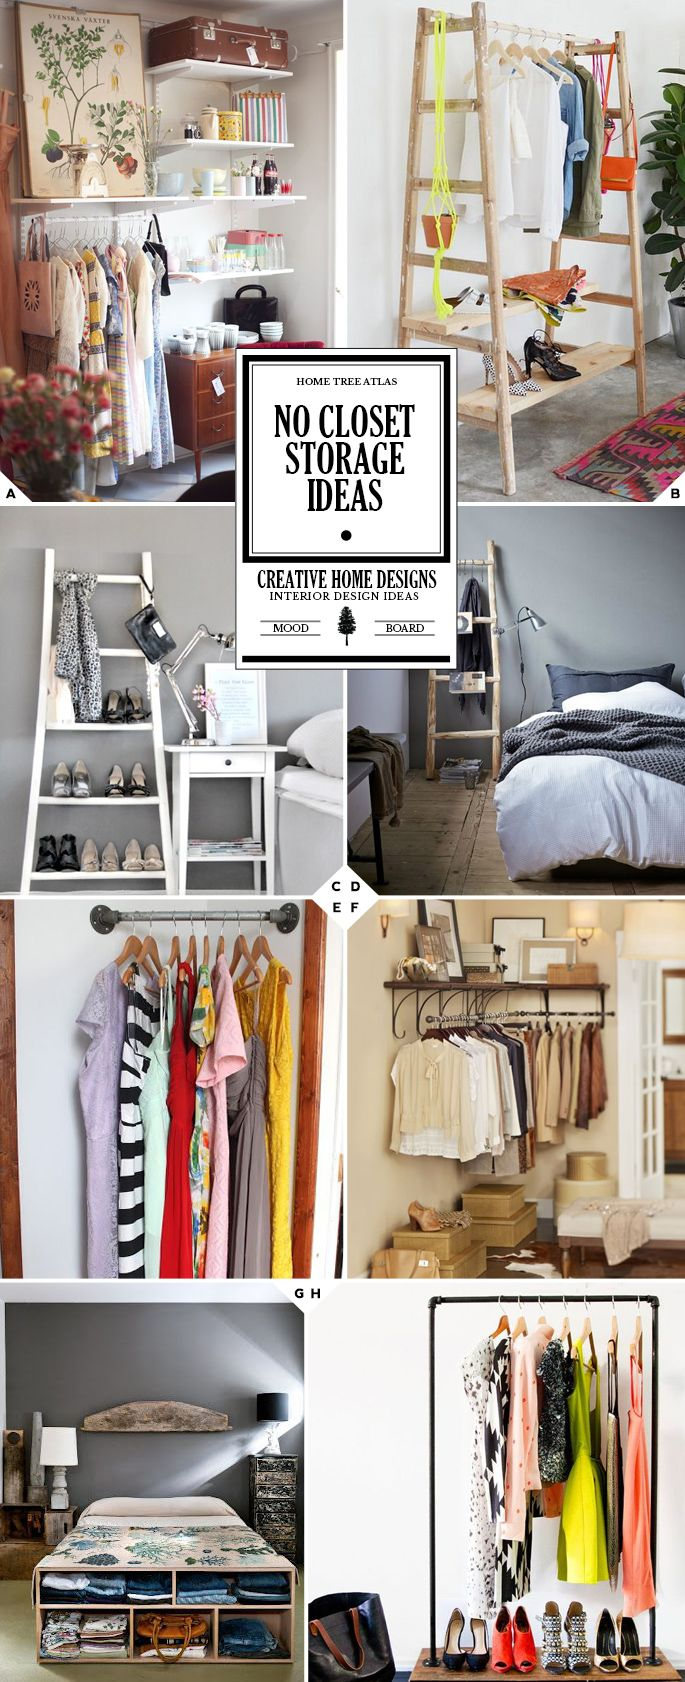 Master Bedroom No Closet best 20+ no closet solutions ideas on pinterest | no closet